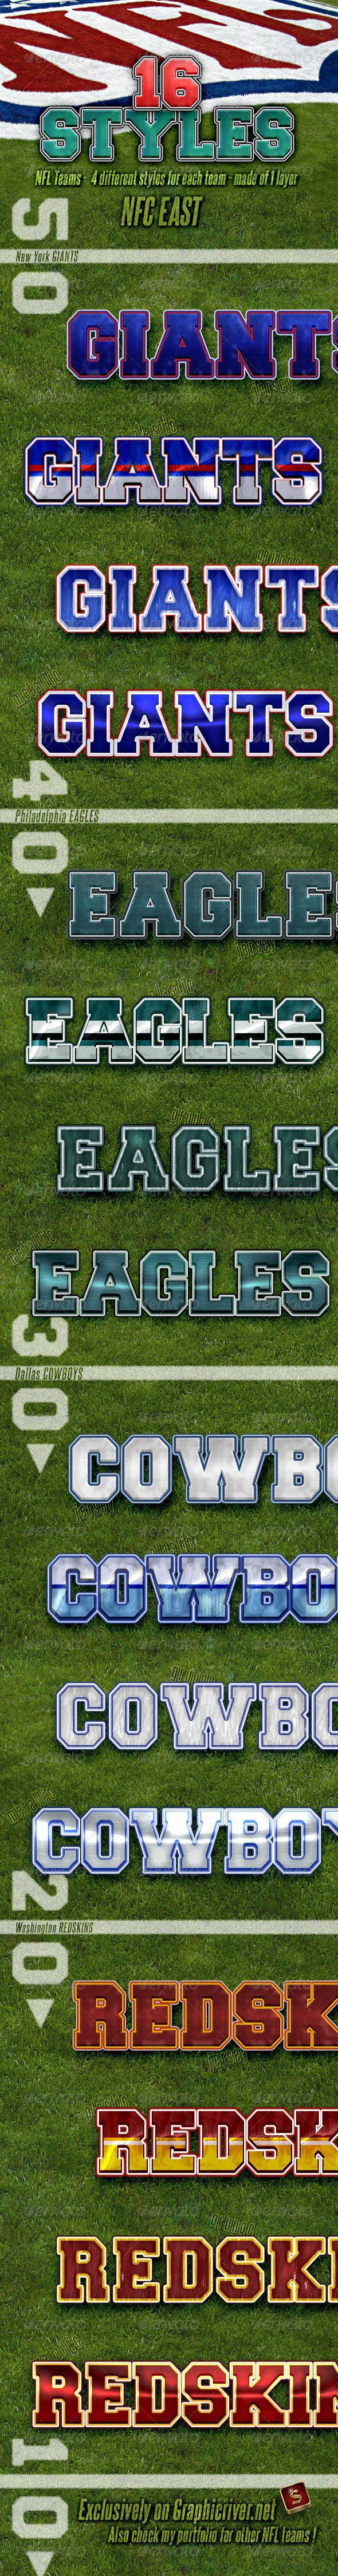 NFL Football Styles - NFC East #GraphicRiver NFL Football Photoshop Layer Styles – Part 5 NFC EAST NFL Football Photoshop layer styles –are the best for your titles, buttons, shapes, etc. Styles are usable for any Text and it also looks good on Shapes or Buttons. Don't forget to check all parts of NFL Team Styles NFL Football Layer Styles – Features All styles are made of 1 layer only Unique Styles Applicable with just one click Unique look and clean design Can be used anywhere ASL and PSD…